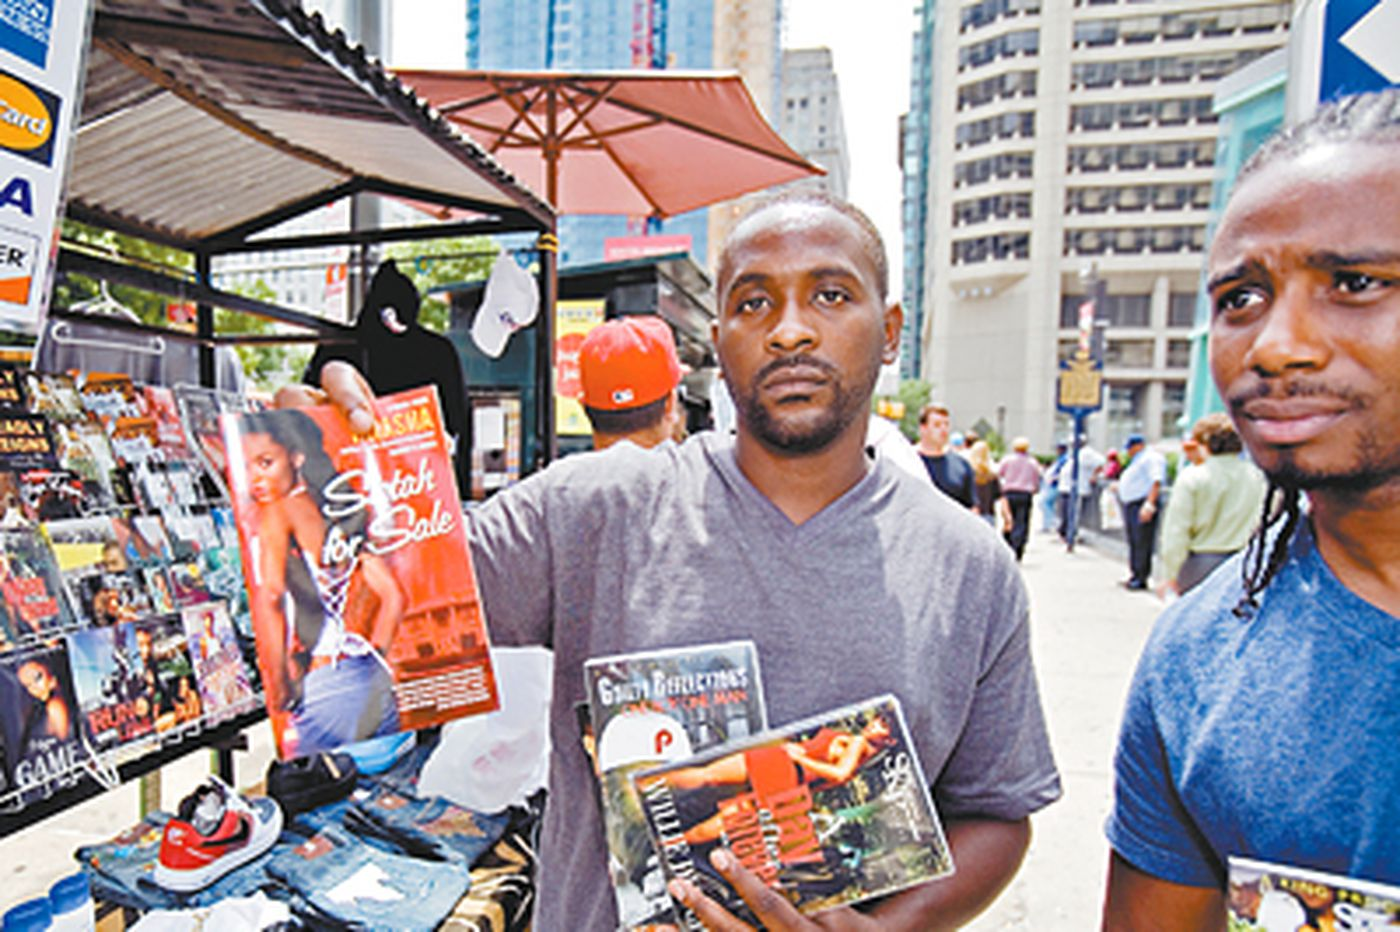 Street lit offers outlet for upstart authors